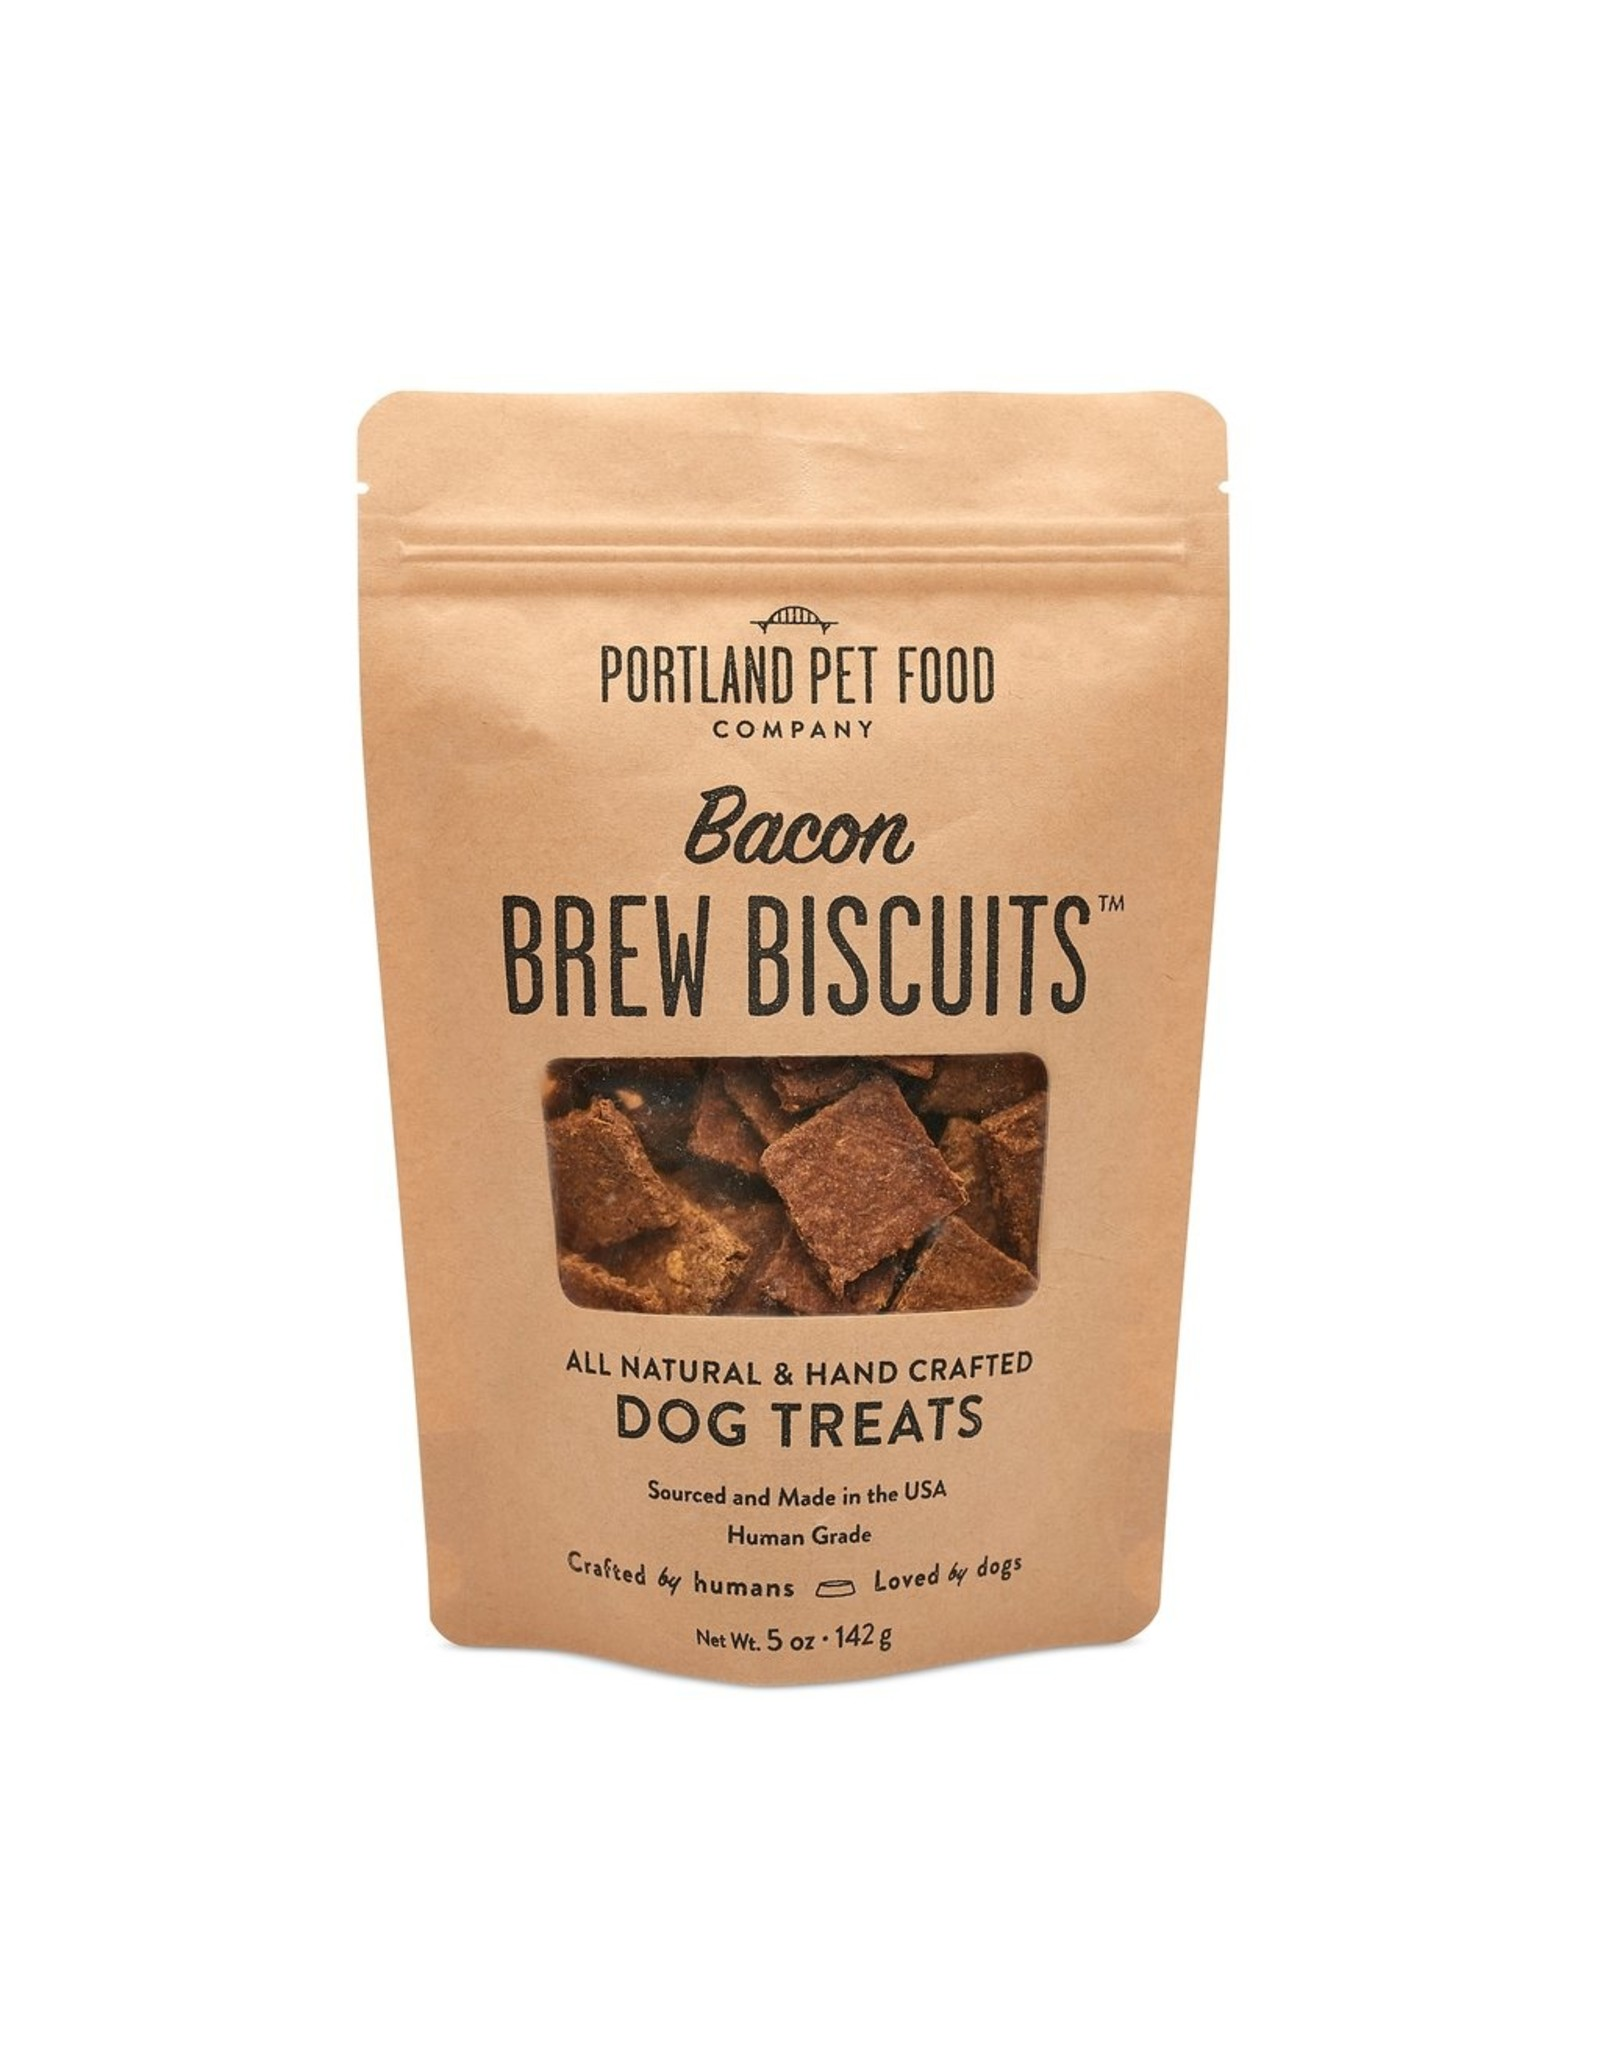 Portland Pet Food Company Portland Pet Food Company Bacon Brew Biscuits 5oz